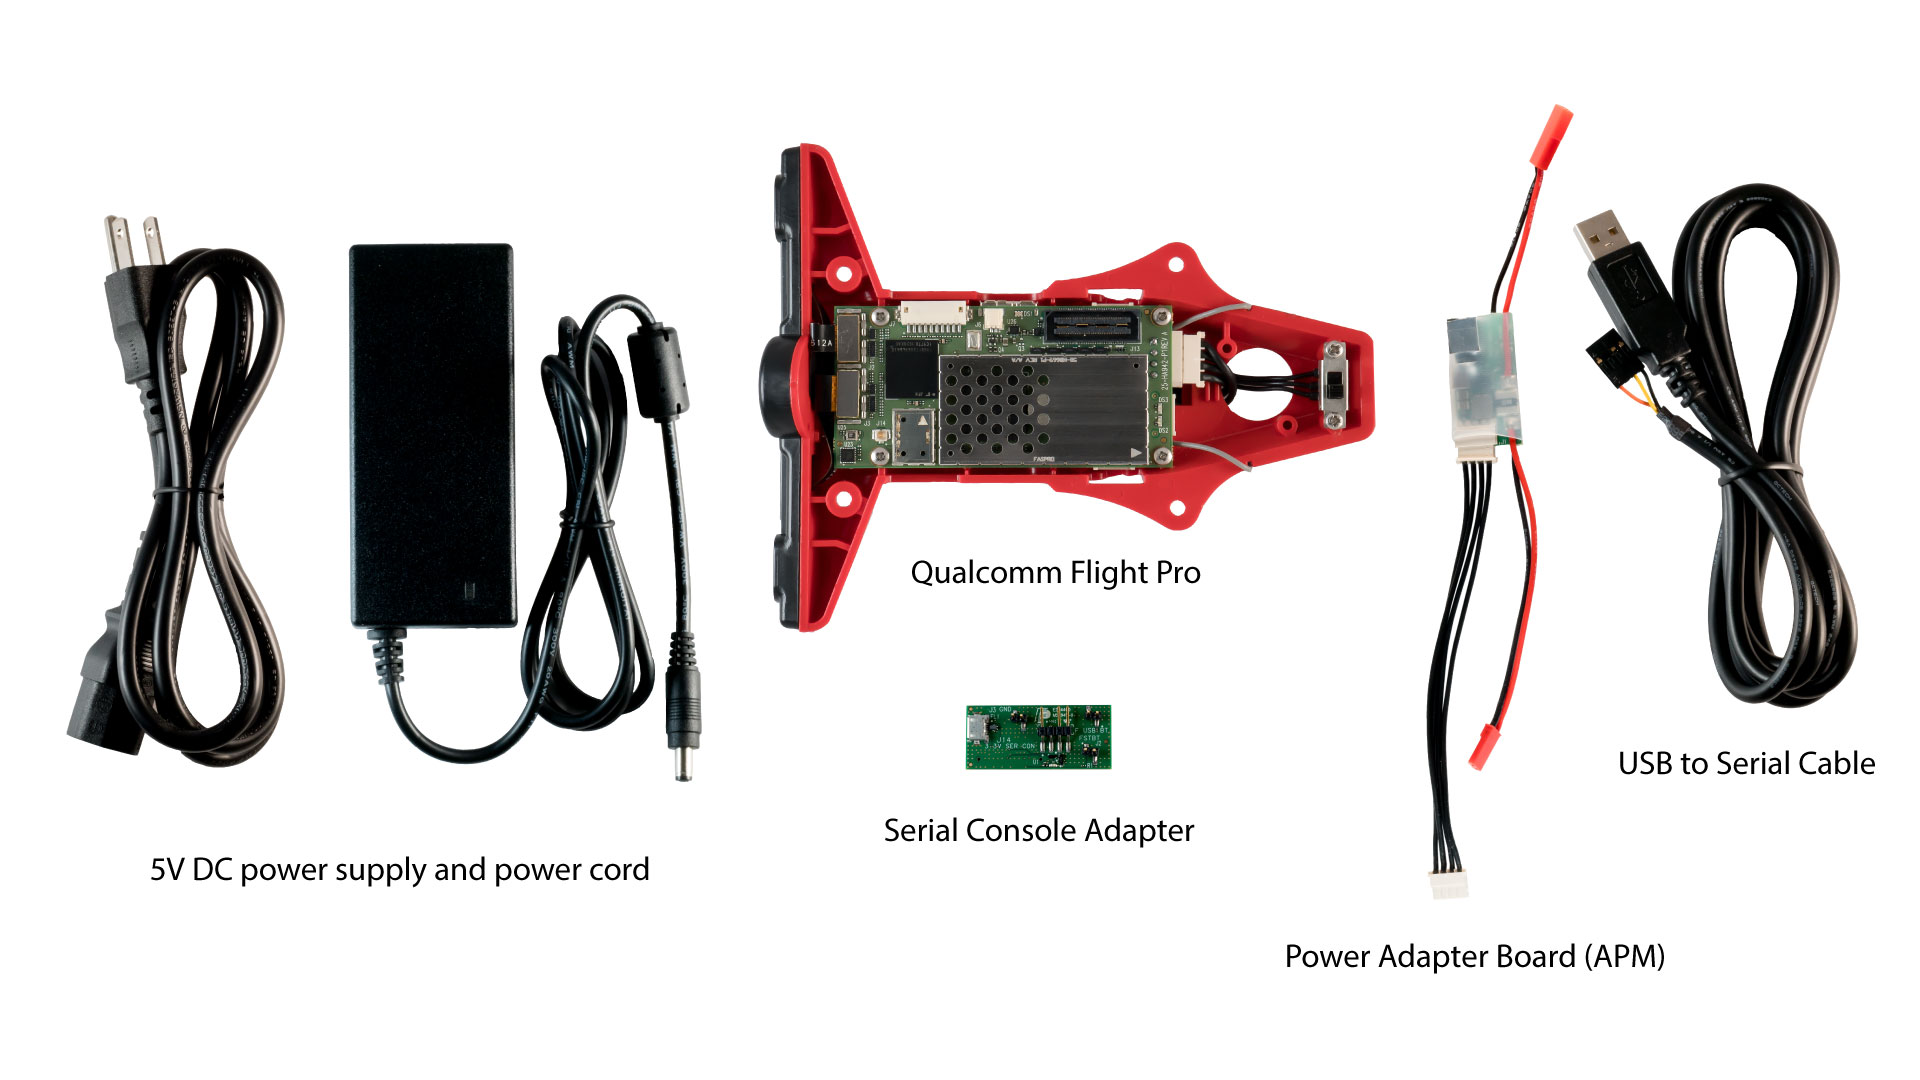 Qualcomm Flight Pro complete kit